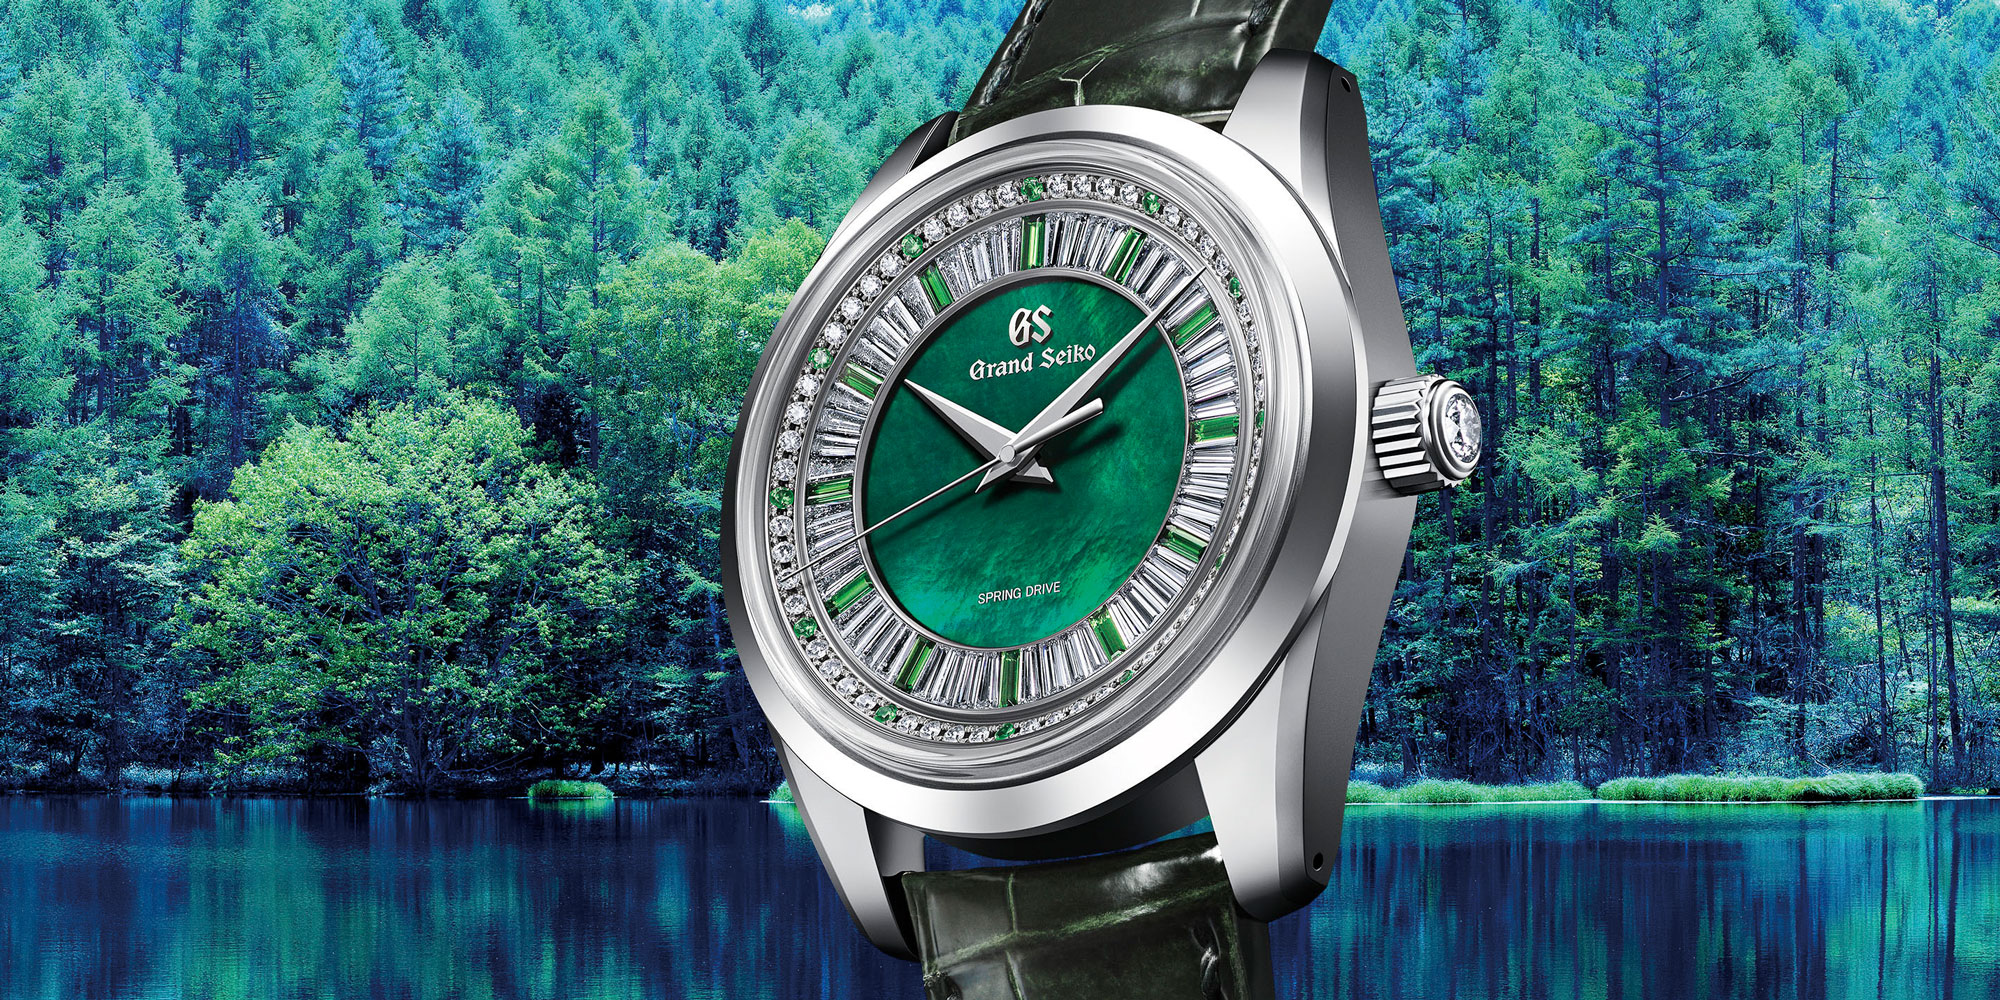 Grand Seiko SBGD207 against forest backdrop